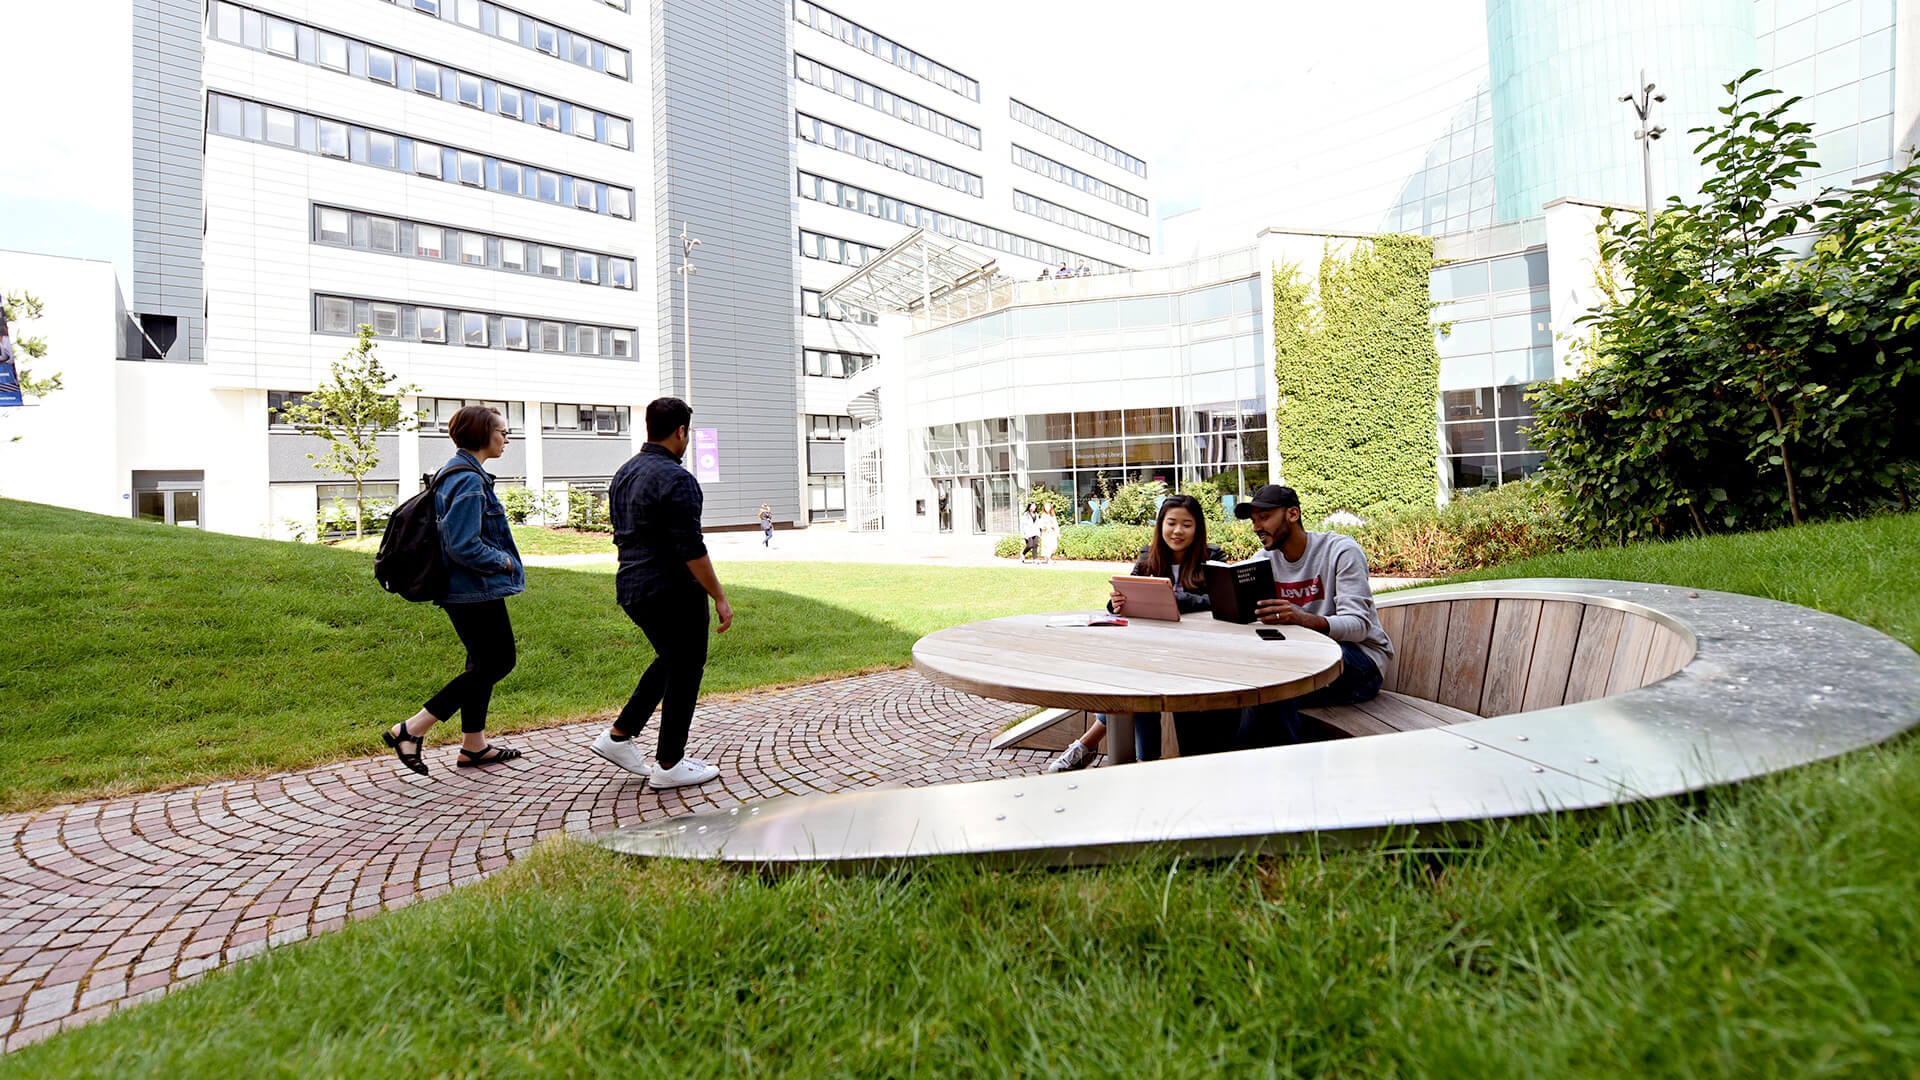 Students enjoying outdoor space at Glasgow Caledonian University campus